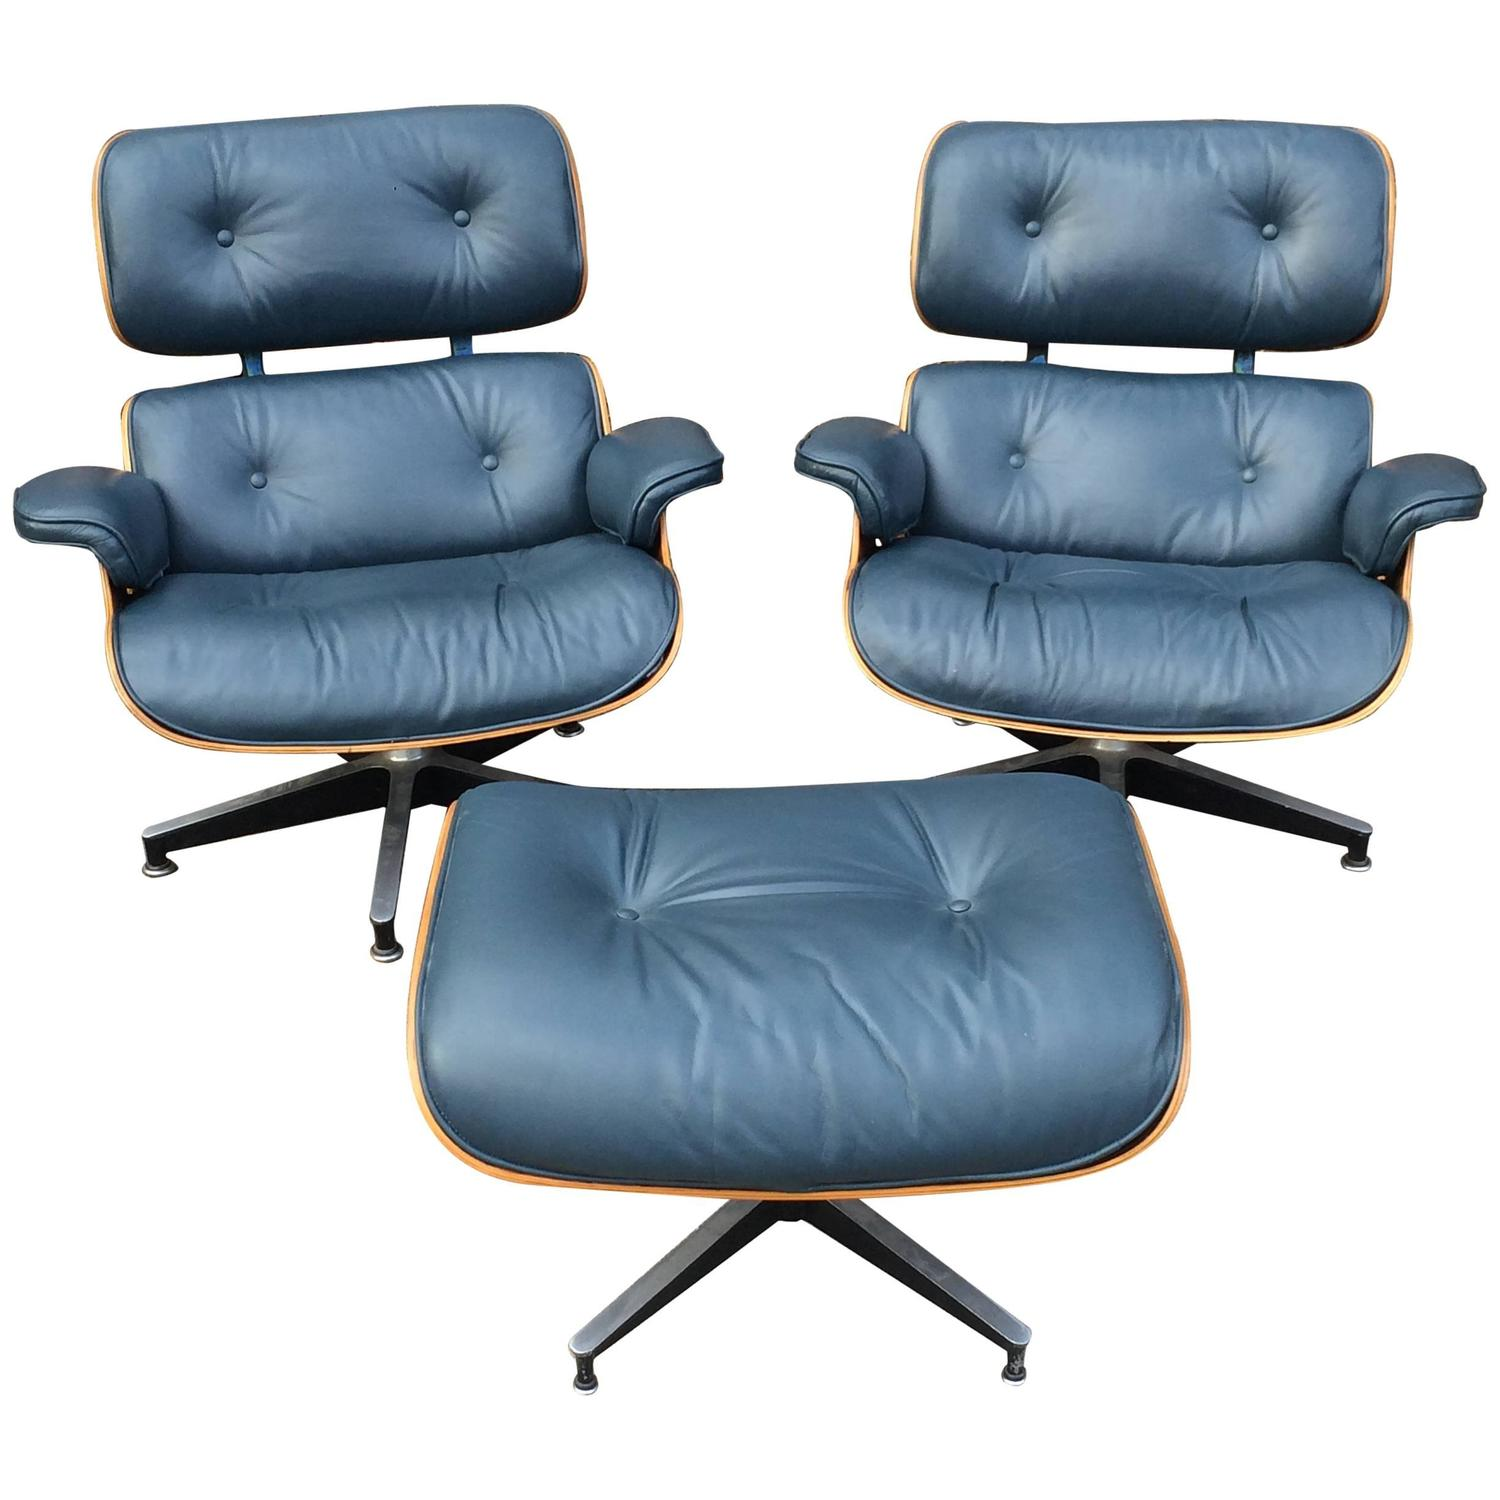 rare navy blue herman miller eames lounge chair set at 1stdibs. Black Bedroom Furniture Sets. Home Design Ideas